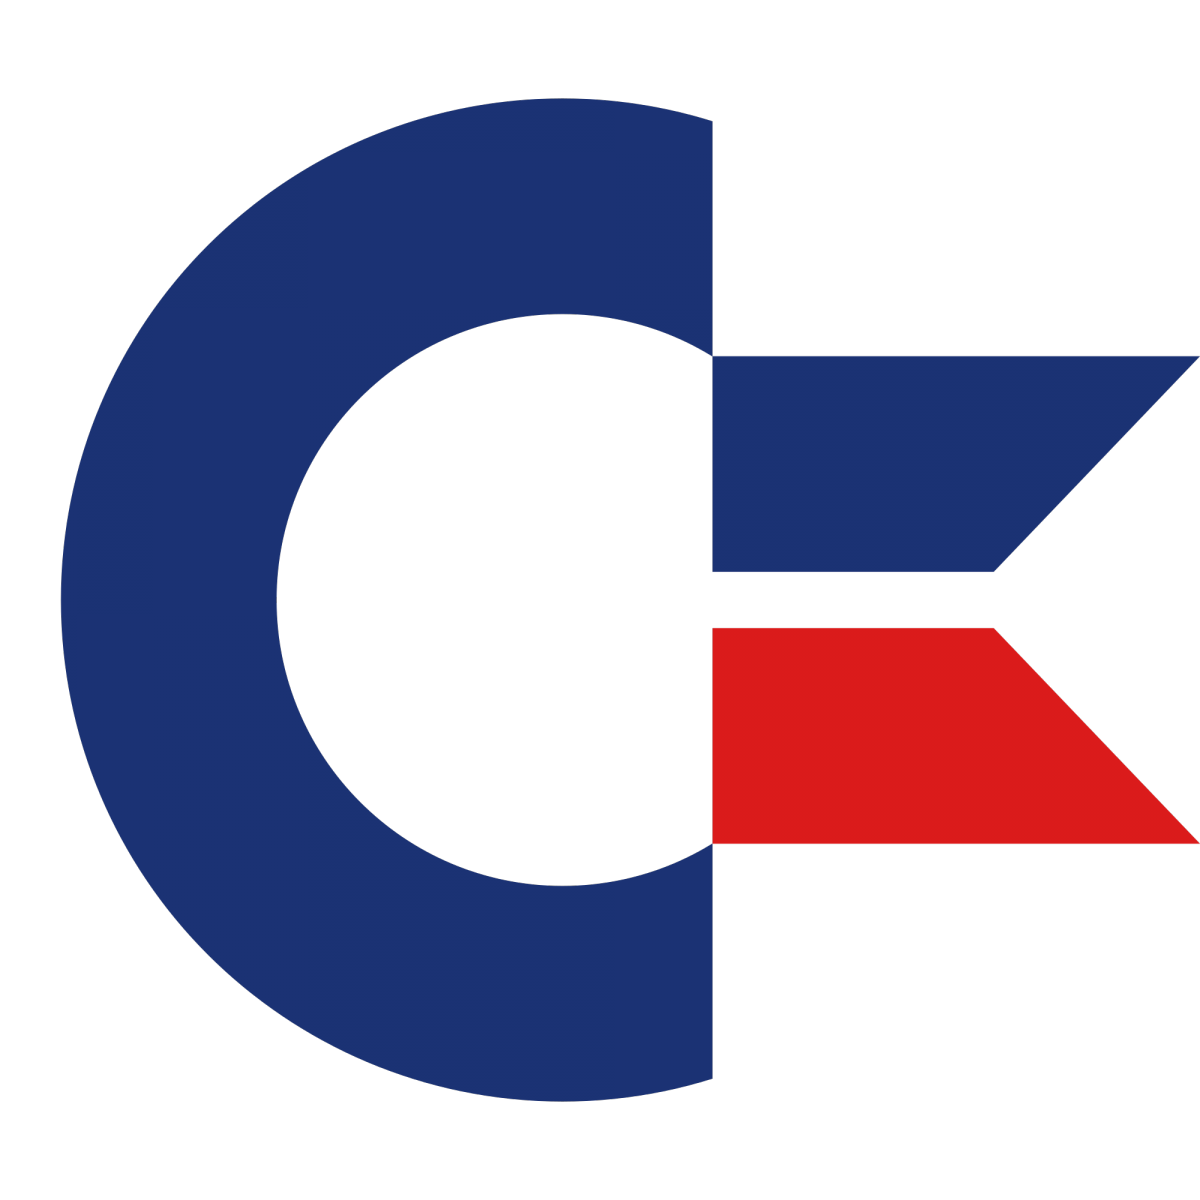 commodore logo.png